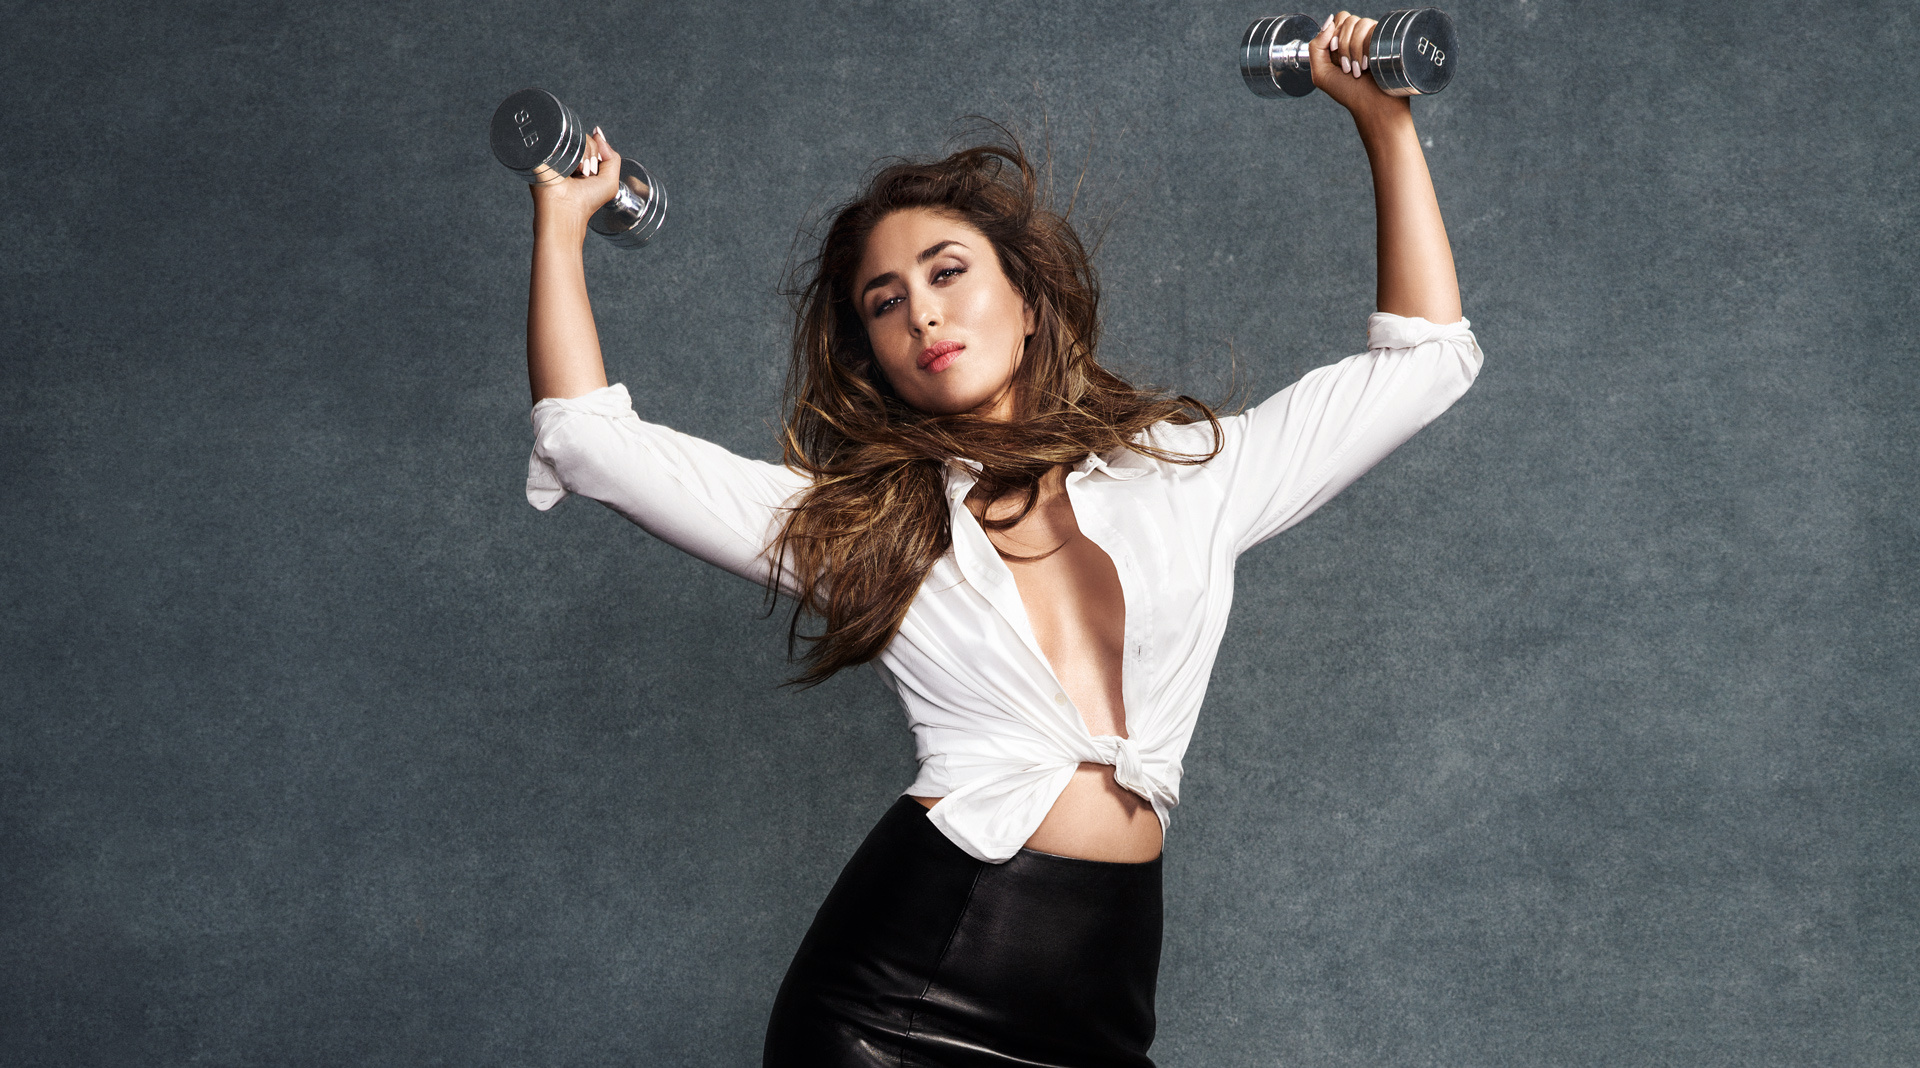 kareena-kapoor-hot-vogue-magazine-photoshoot